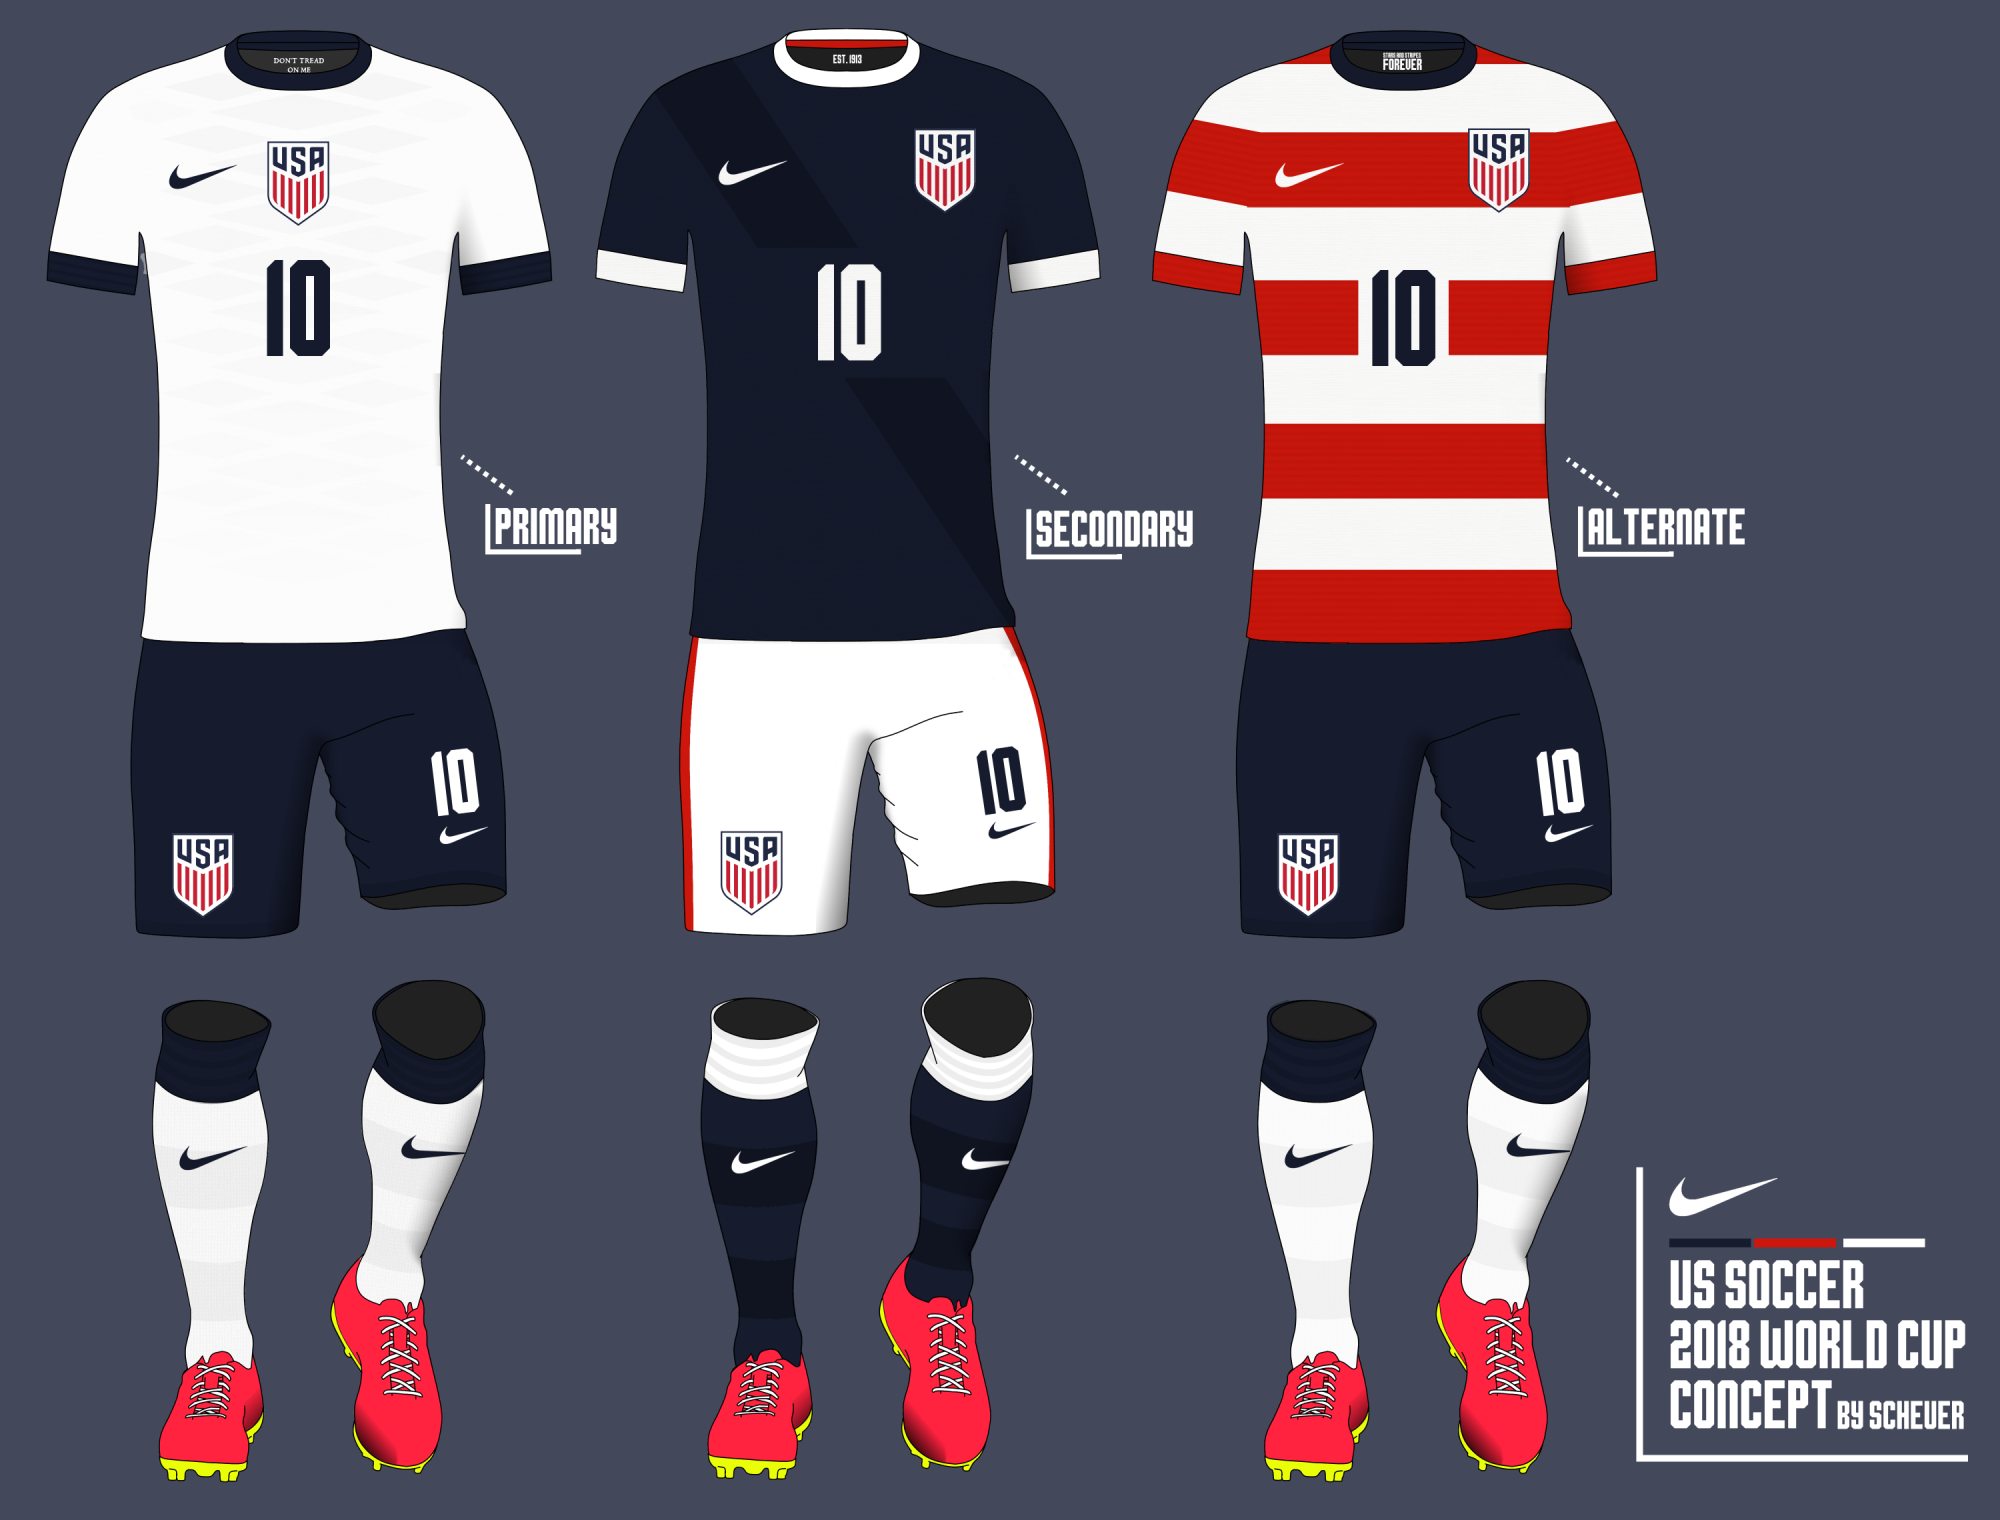 a3b3644ba spread_3000x.thumb.png.554253db47a30a88d07b83fa29684d4f.png. With this new  set of kits, the idea was to establish a new orthodoxy of how US Soccer  designs ...